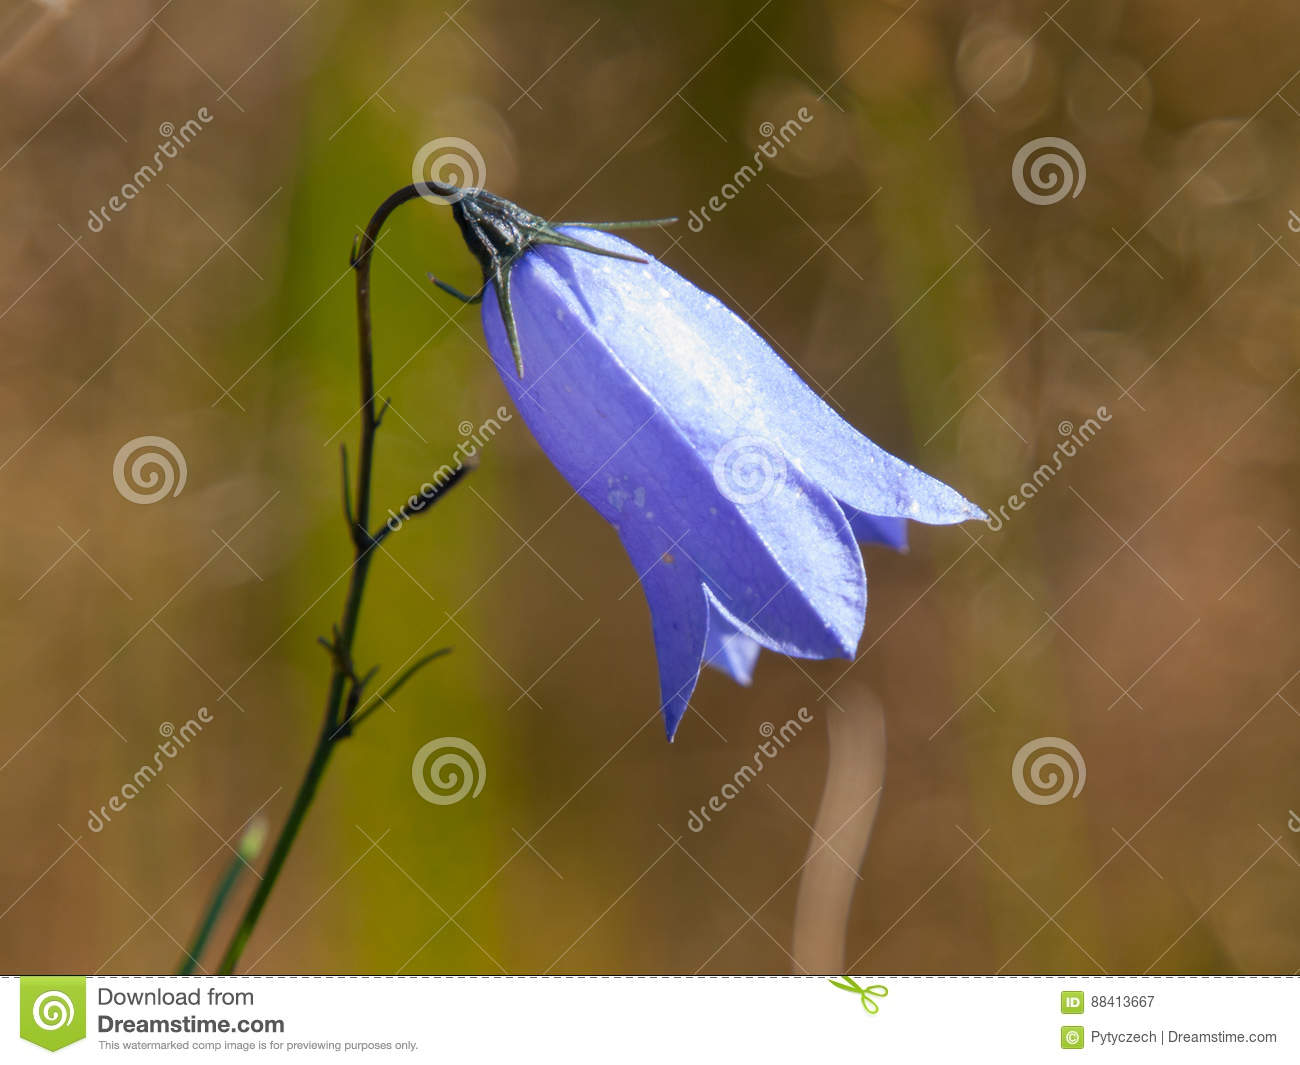 Background image 8841 - Violet Meadow Bellflower Aka Campanula With Green Bokeh Background Shallow Depth Of Field